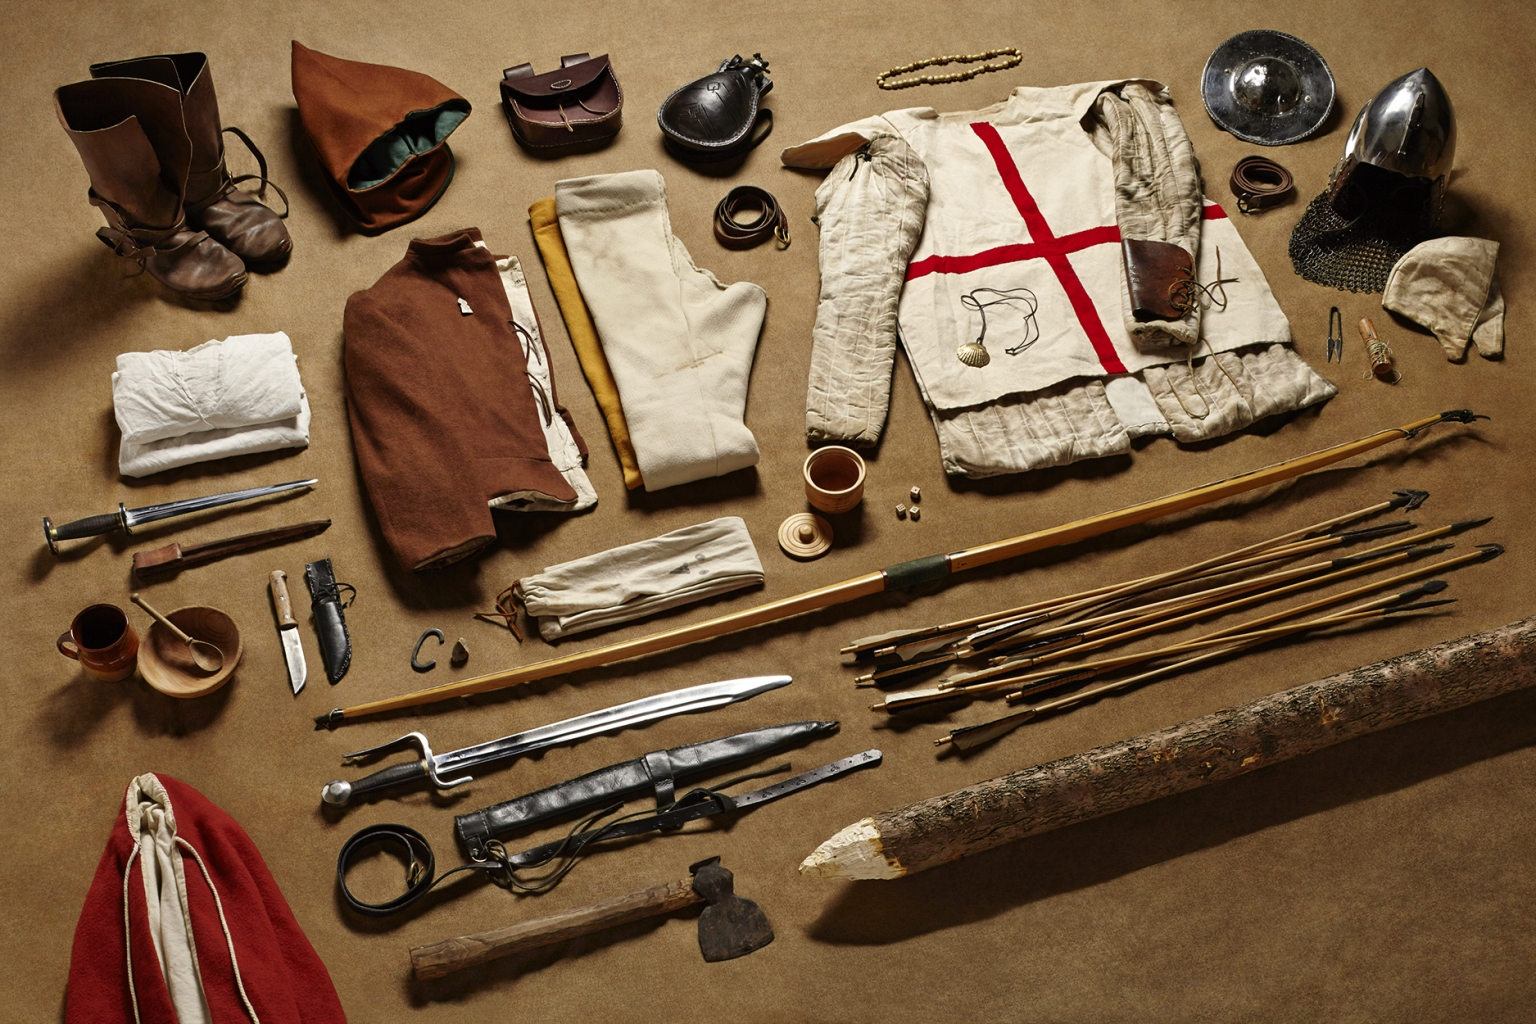 Fighting Archer, Battle of Agincourt, 1415 - Soldiers' Inventories - Photo by Thom Atkinson